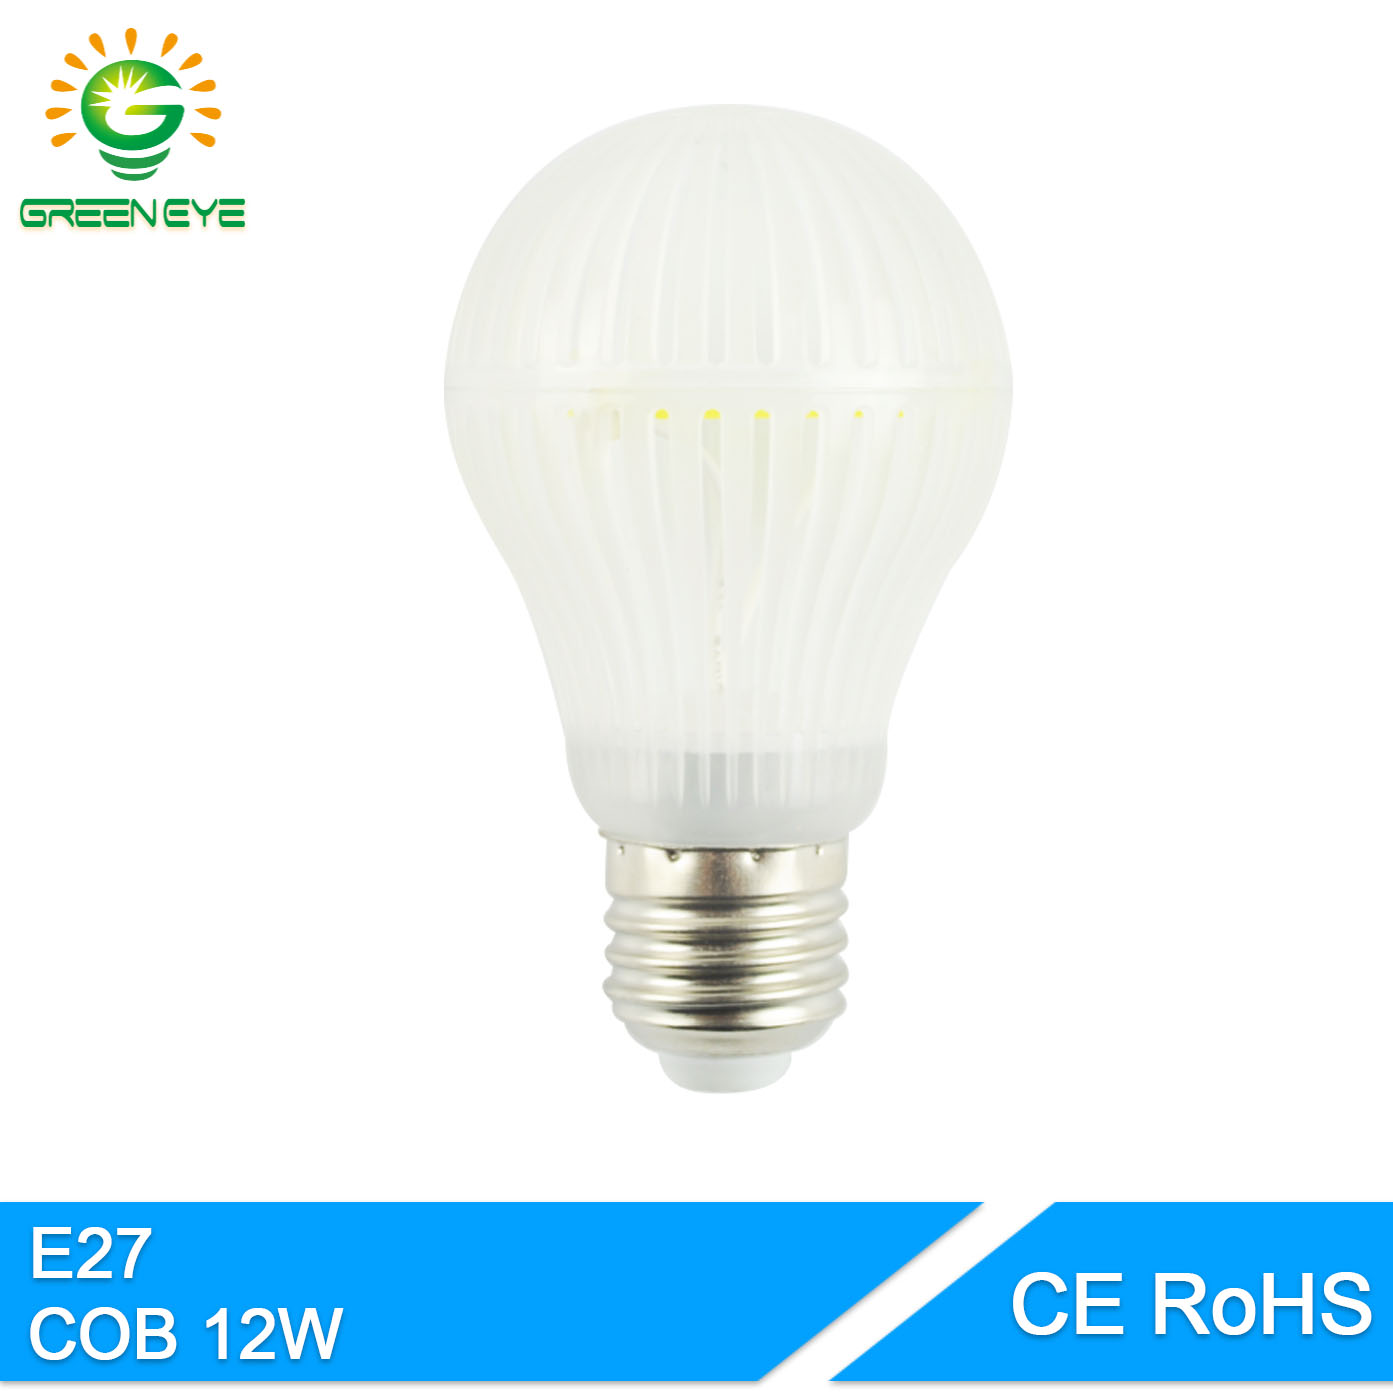 GreenEye Korea 120LEDs COB Chip Whole Body Bright Led bulb E27 12W  220V 240V LED Edison Light Lamp Lampada Ampoule Lampara 50w e27 120 leds ufo light bulb